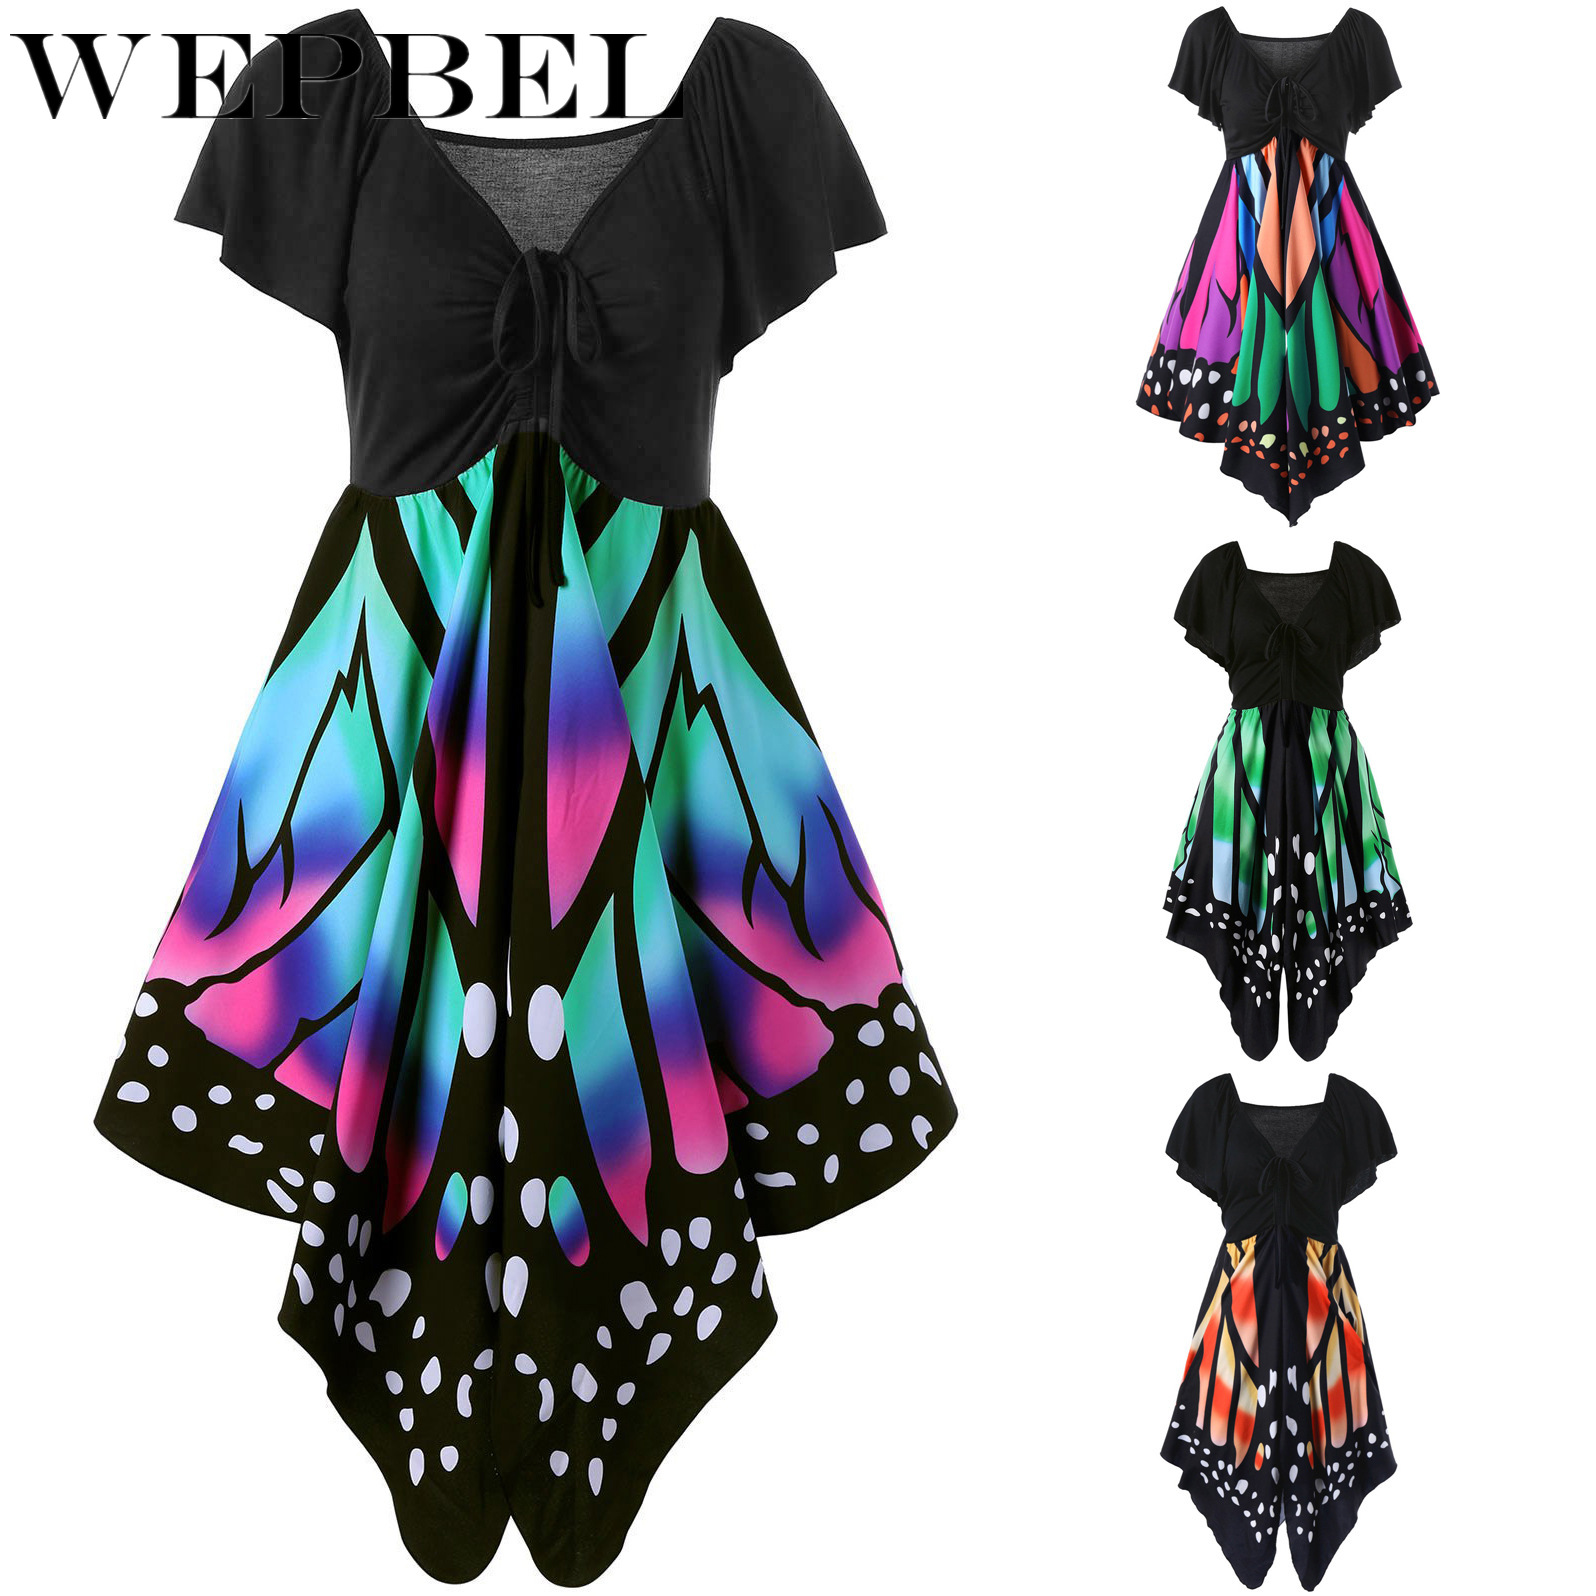 WEPBEL Women Dress Butterfly Print Lace Up Short Sleeve V Neck Midi Dresses Fashion Casual Vestidos